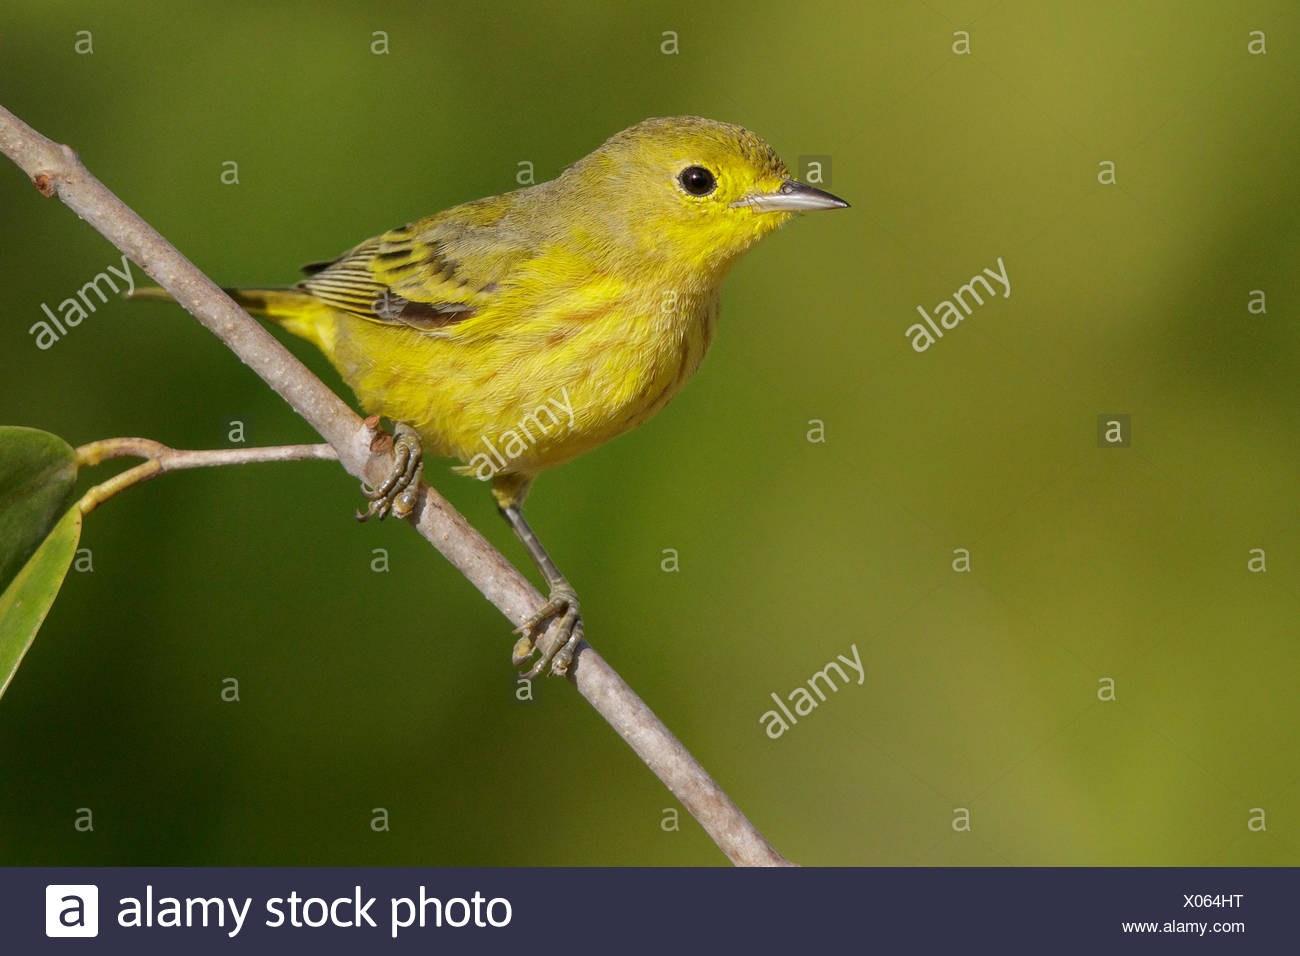 Yellow Warbler (Setophaga petechia) perched on a branch in Cuba. - Stock Image